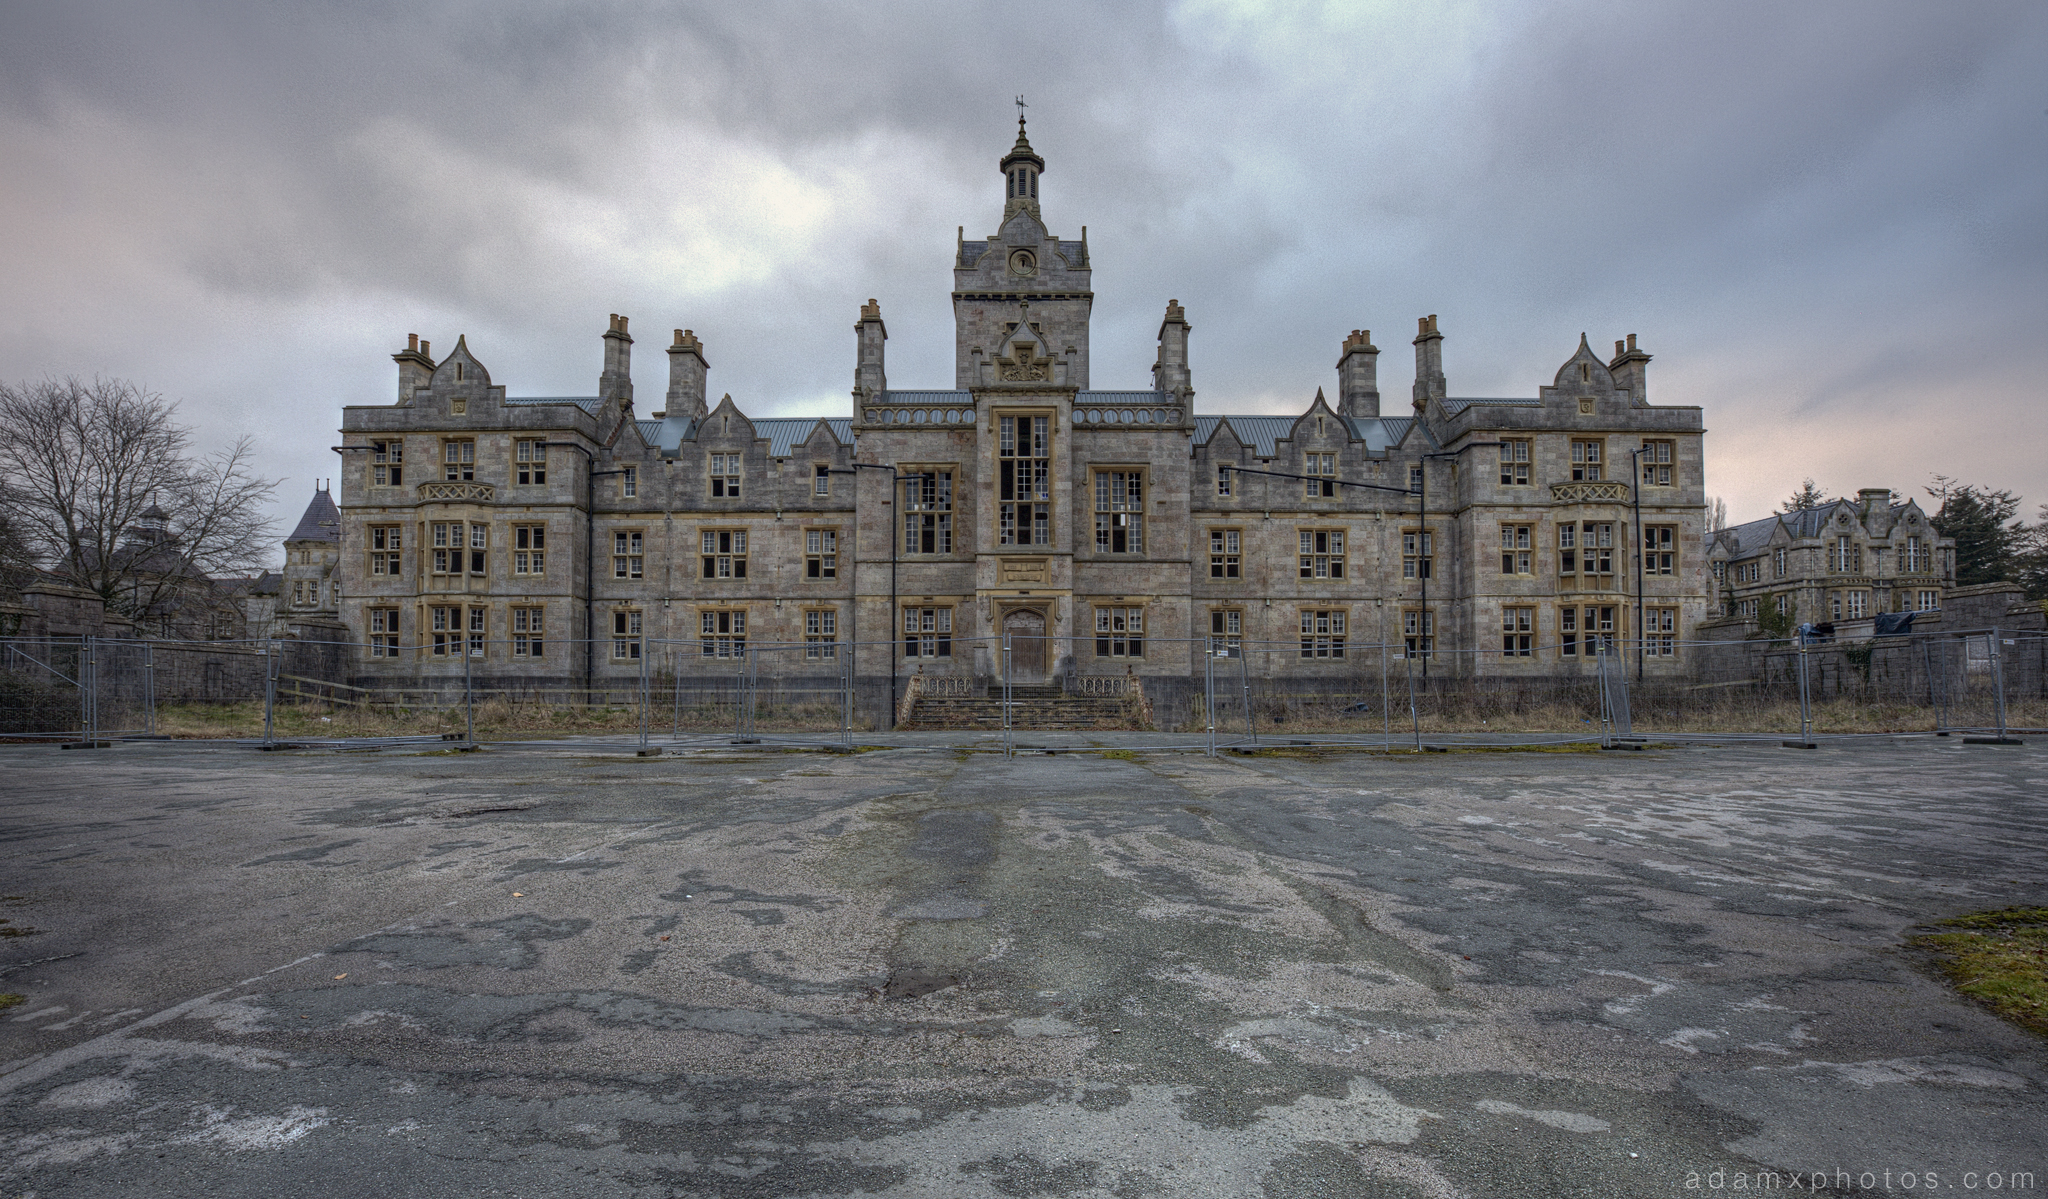 Front facade moody haunting atmospheric Denbigh Asylum Wales Urbex Urban exploration Adam X Urban Exploration Photo photos photographs UK March 2015 report abandoned disused derelict decay decayed